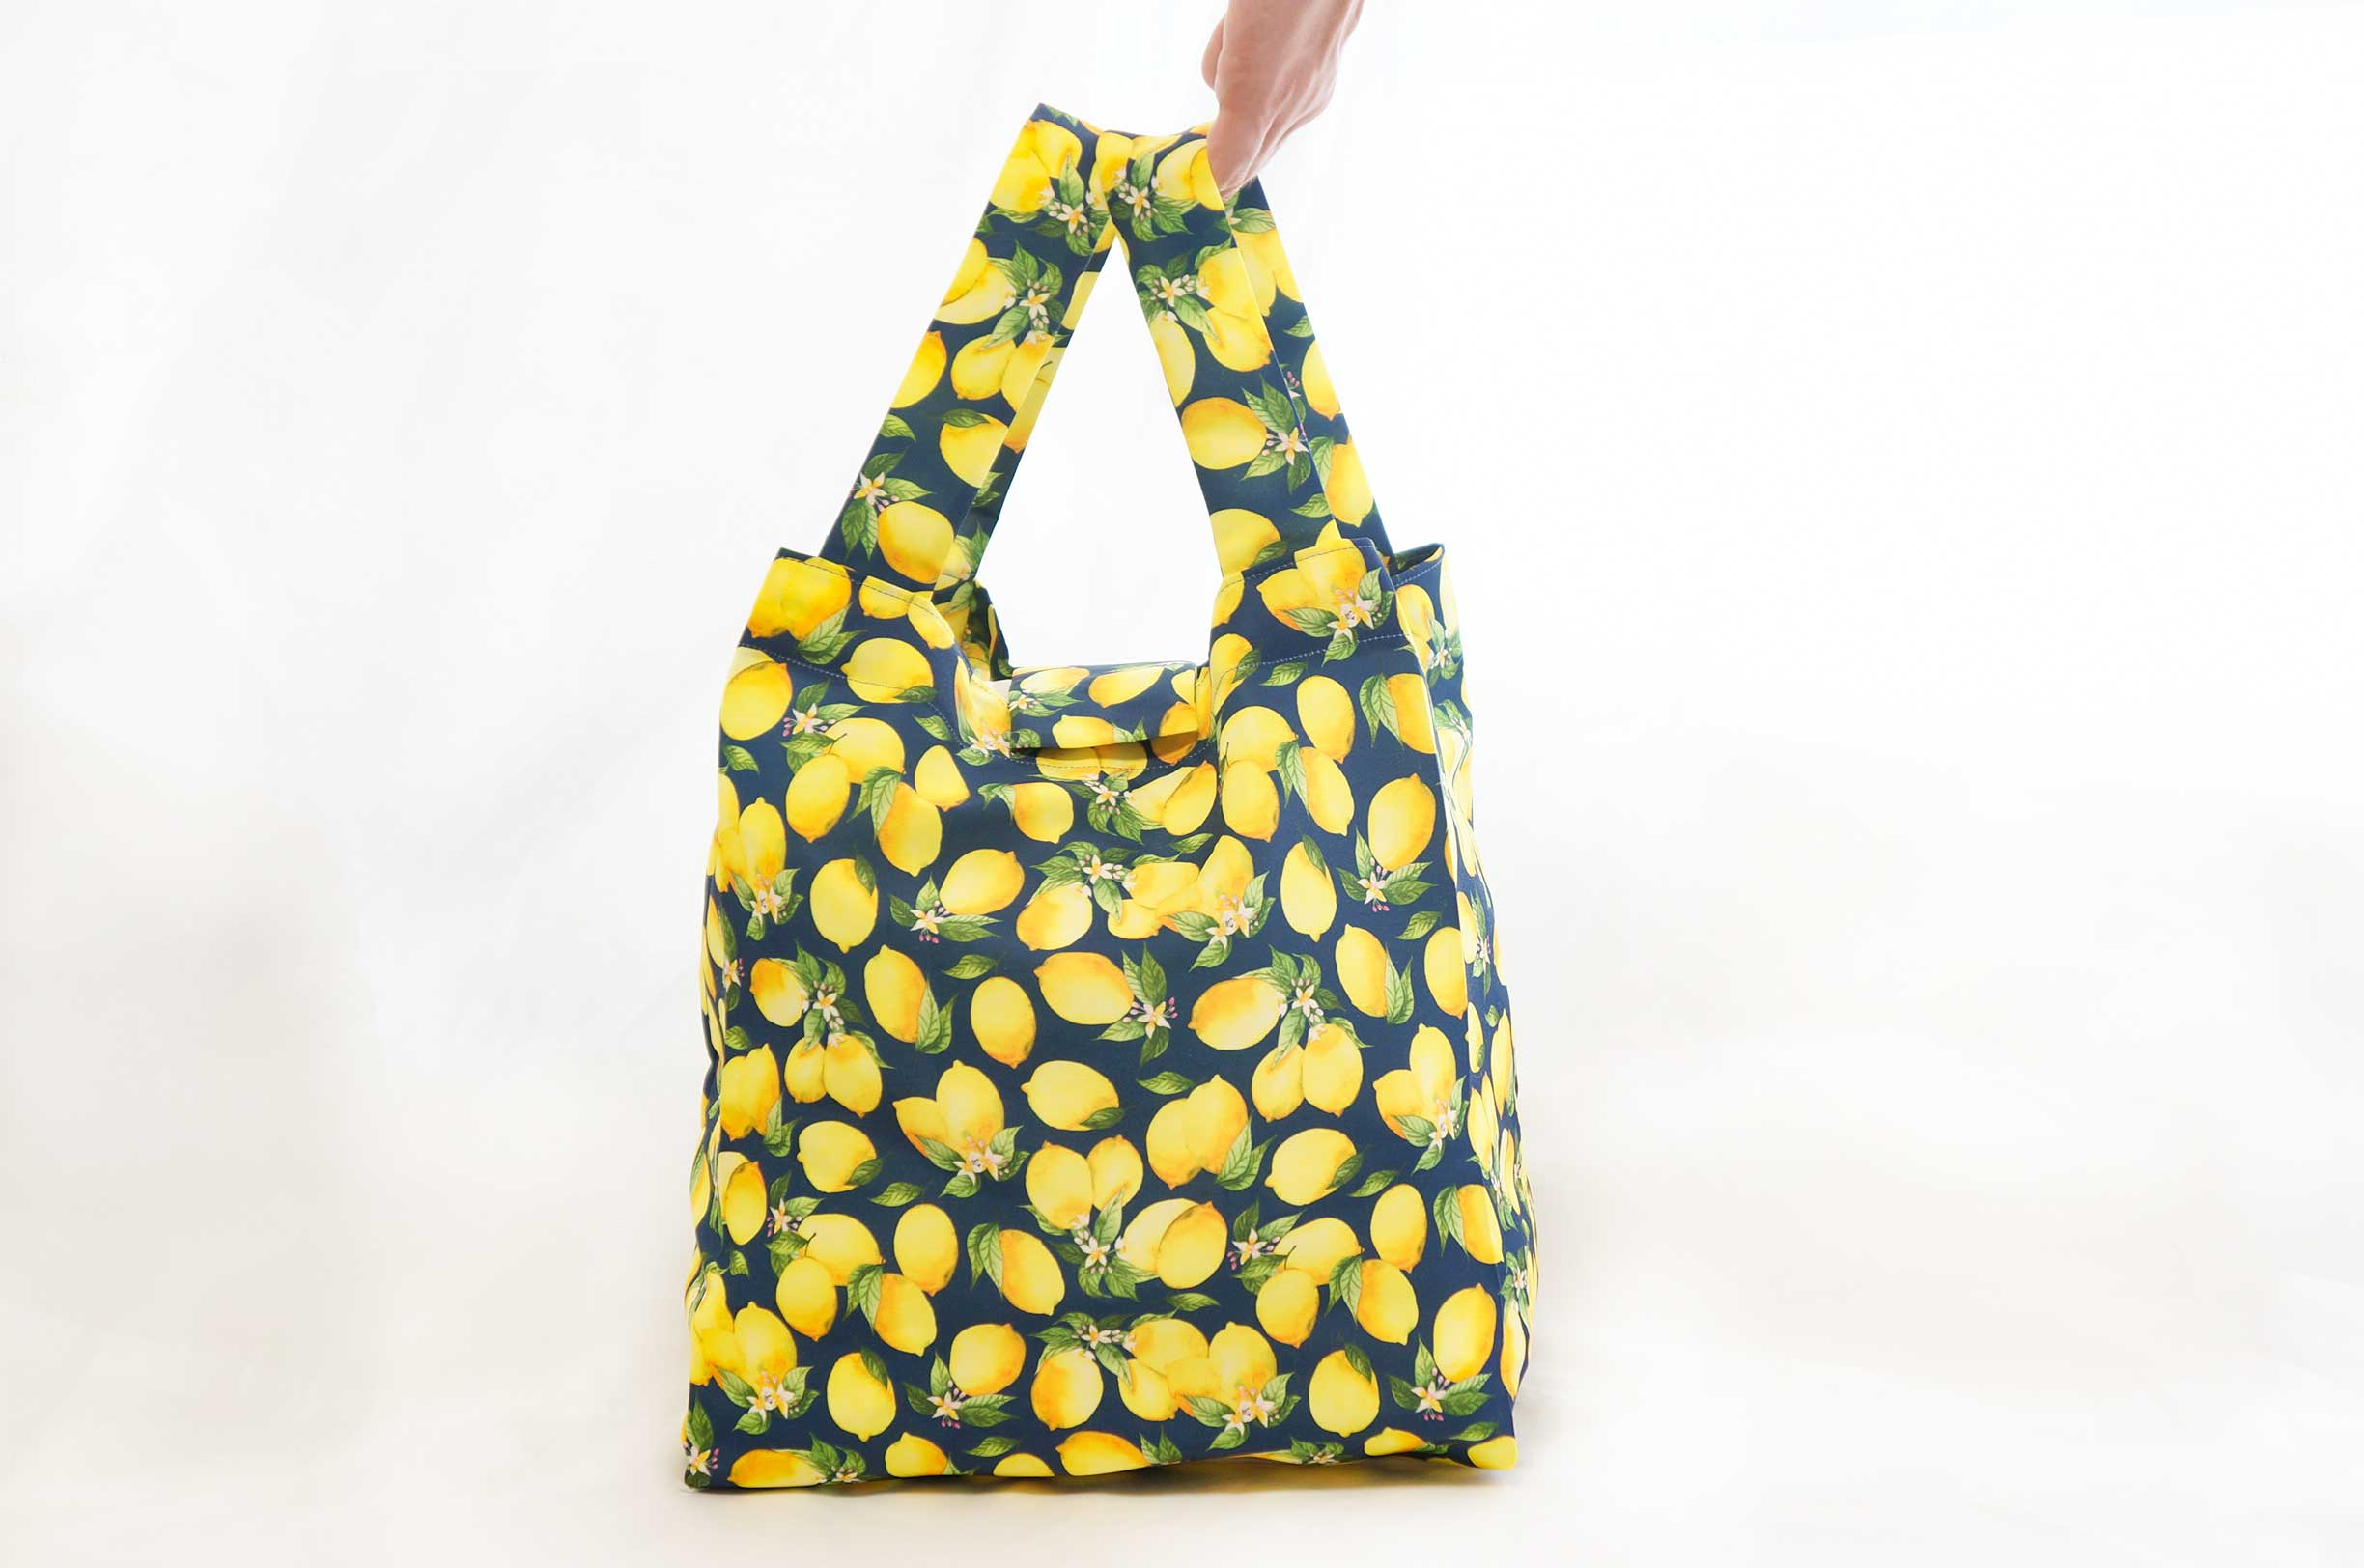 DIY Lemon Eco-Bag (Reusable Shopping Bag)